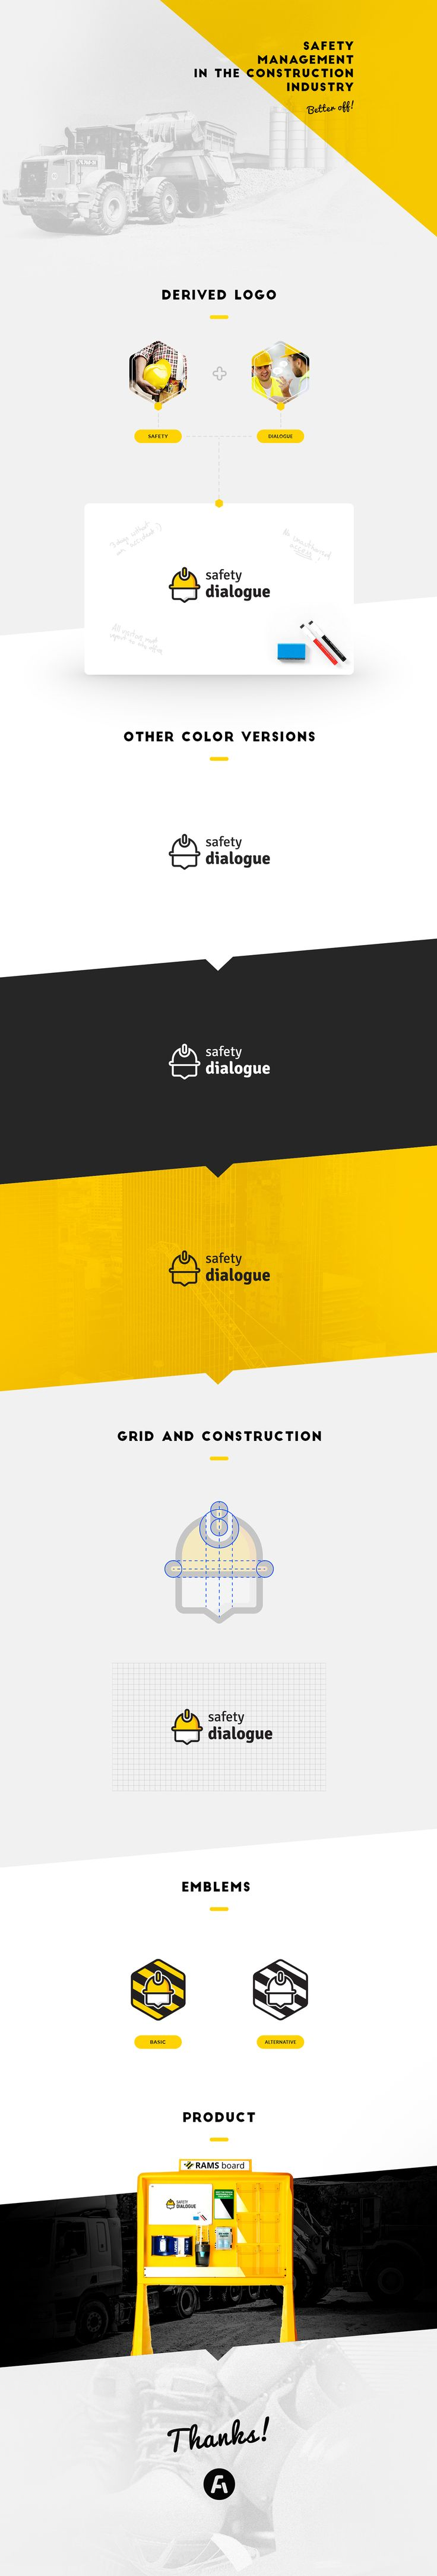 """The logo """"Safety dialogue"""" is a promotion the Product """"Rams Boards"""" that help on the Safety management in the construction industry.---Hire me: falgowski @ gmail.com"""